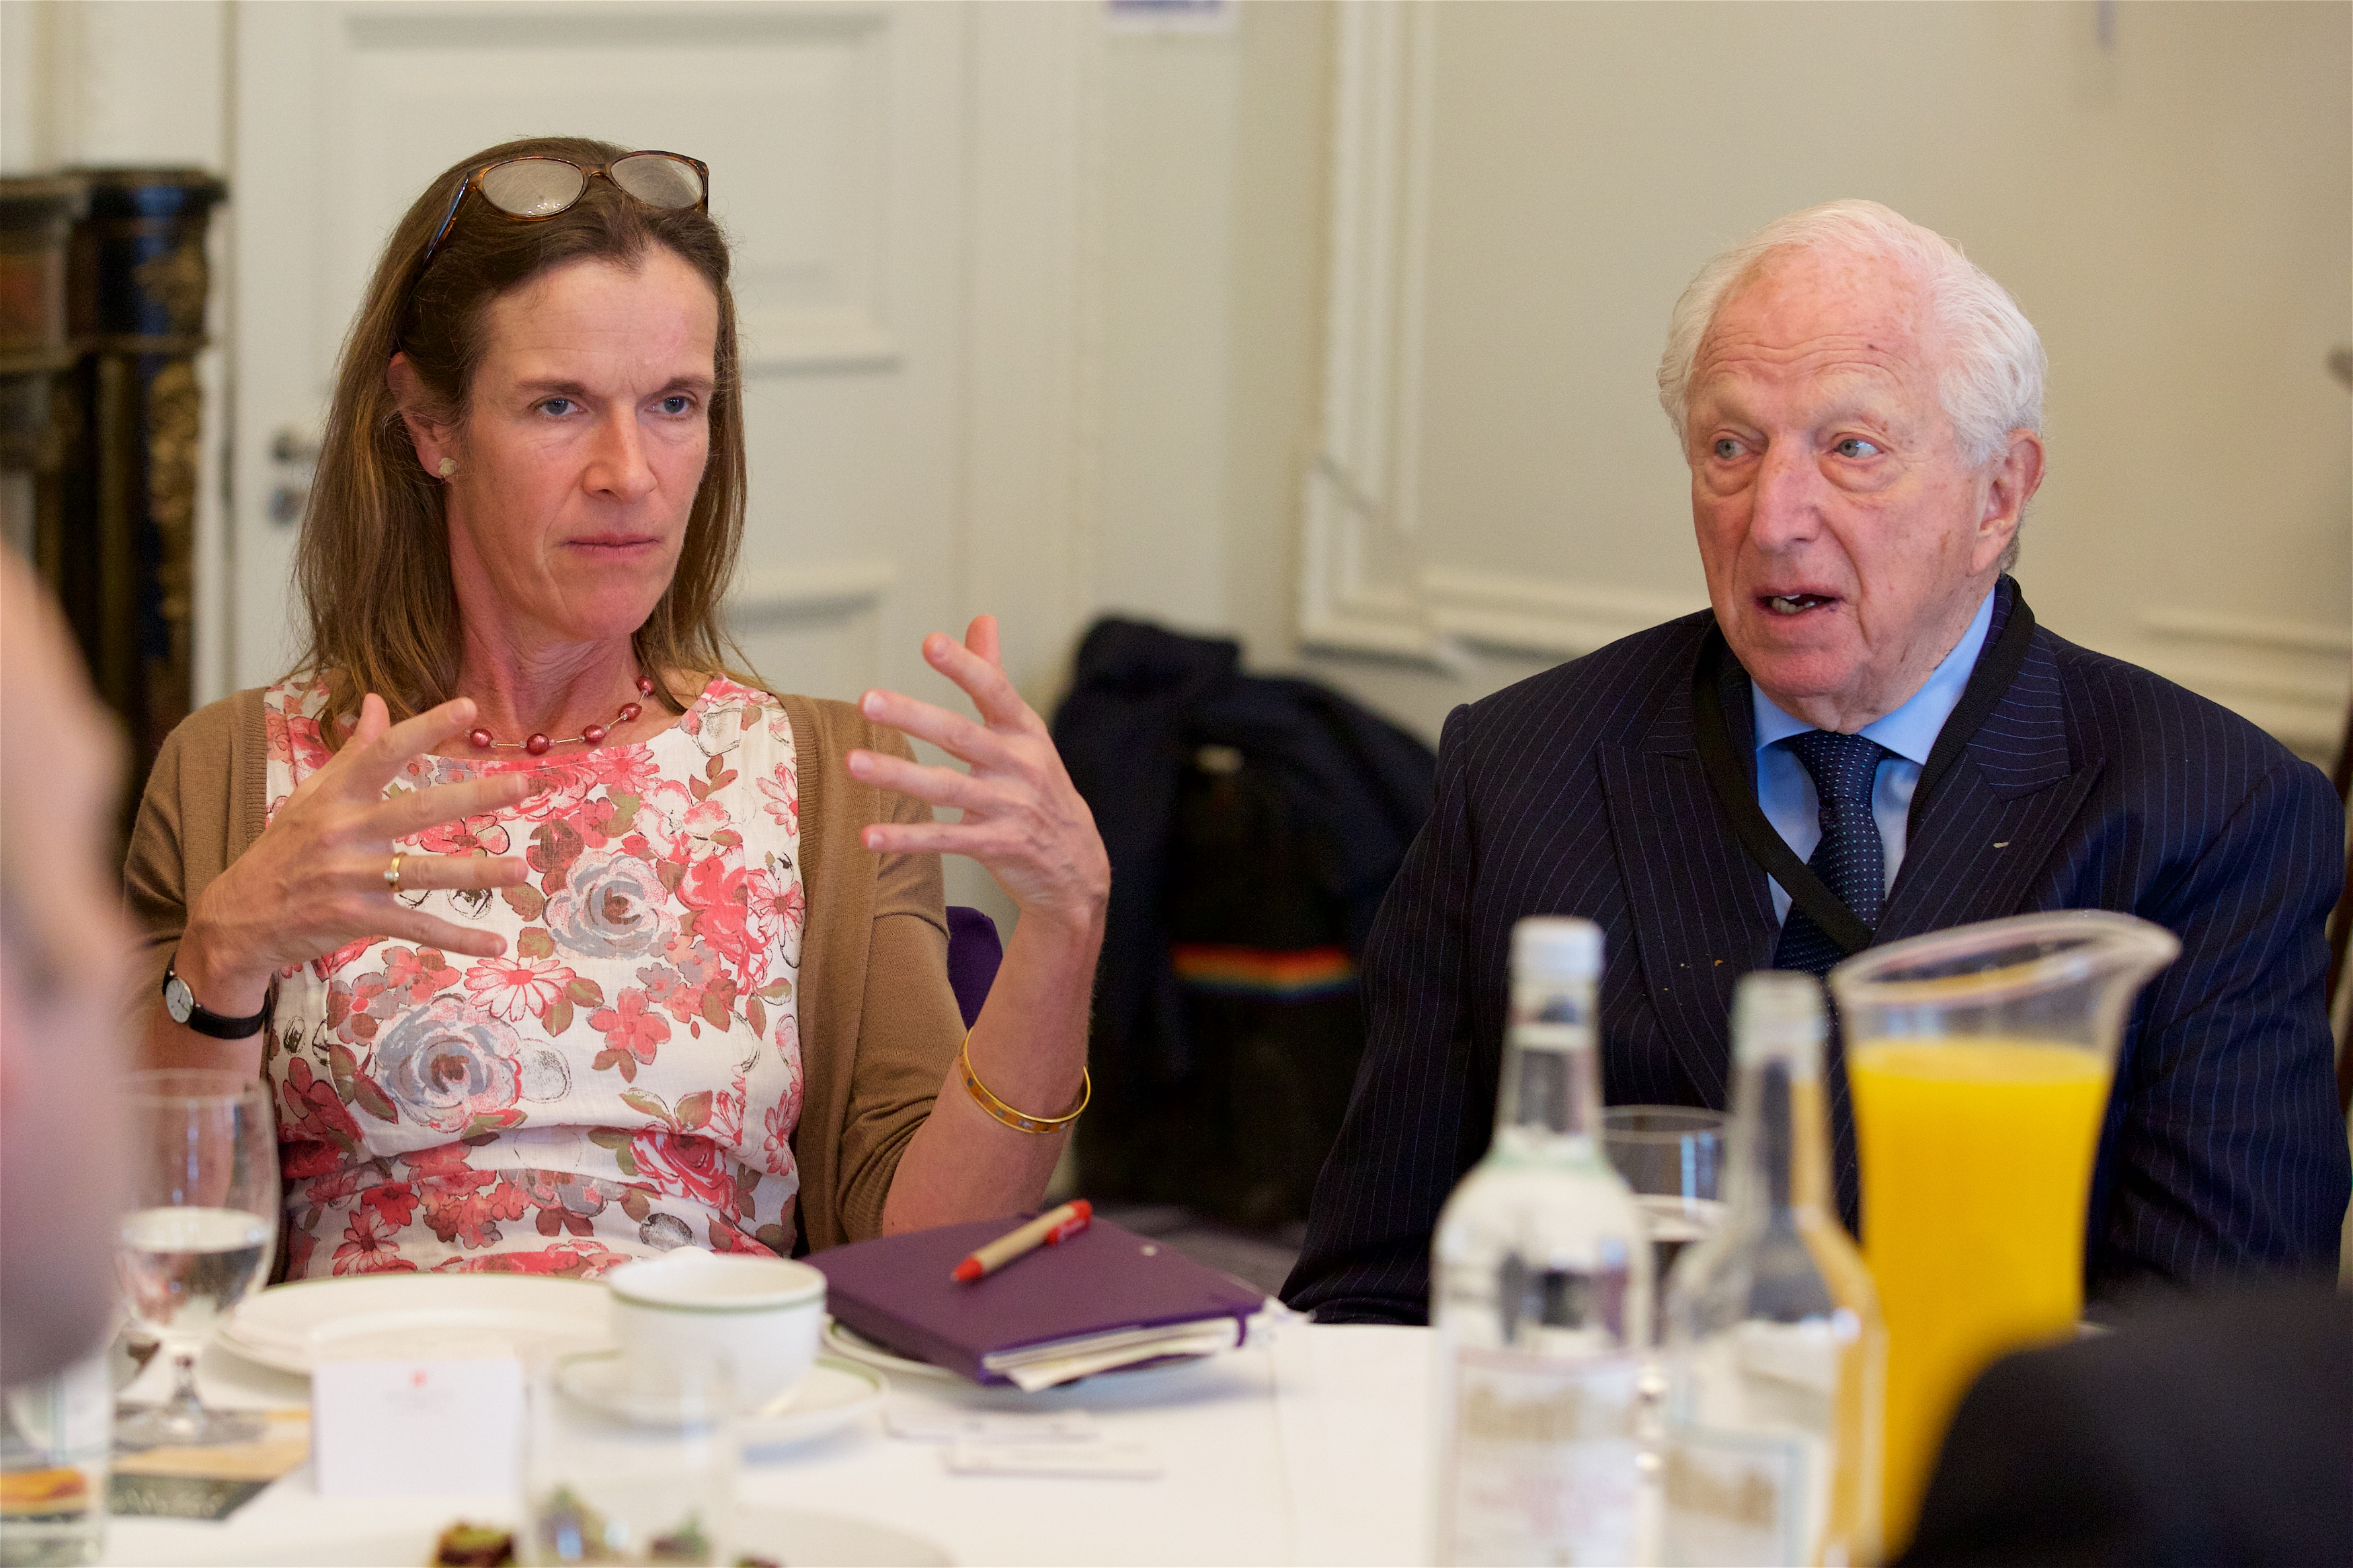 Judith Slater and Rt Hon Lord Woolf